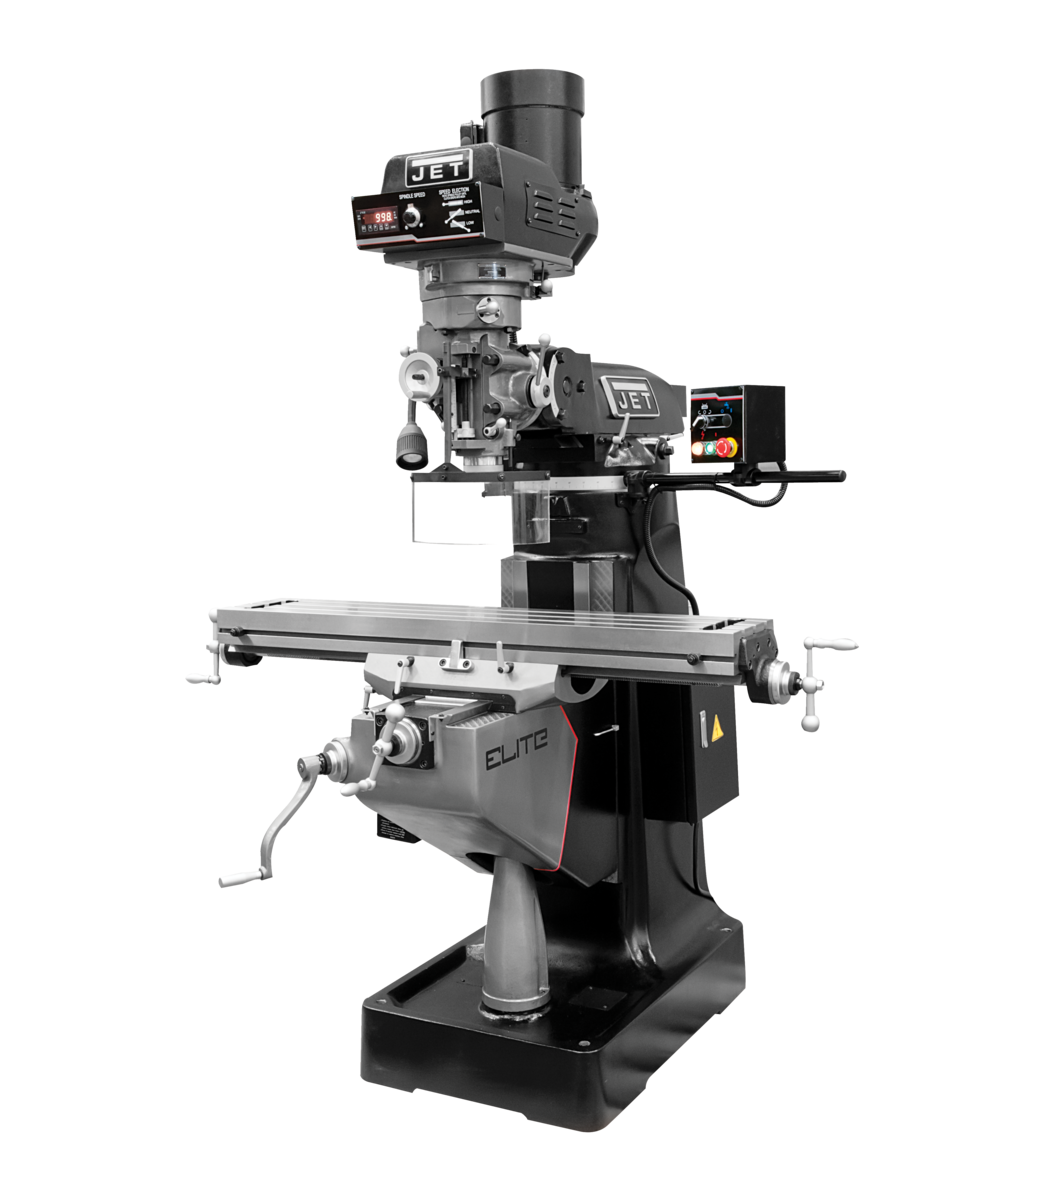 EVS-949 Mill with 2-Axis ACU-RITE 303 DRO and Servo X, Y-Axis Powerfeeds and USA Air Powered Draw Bar